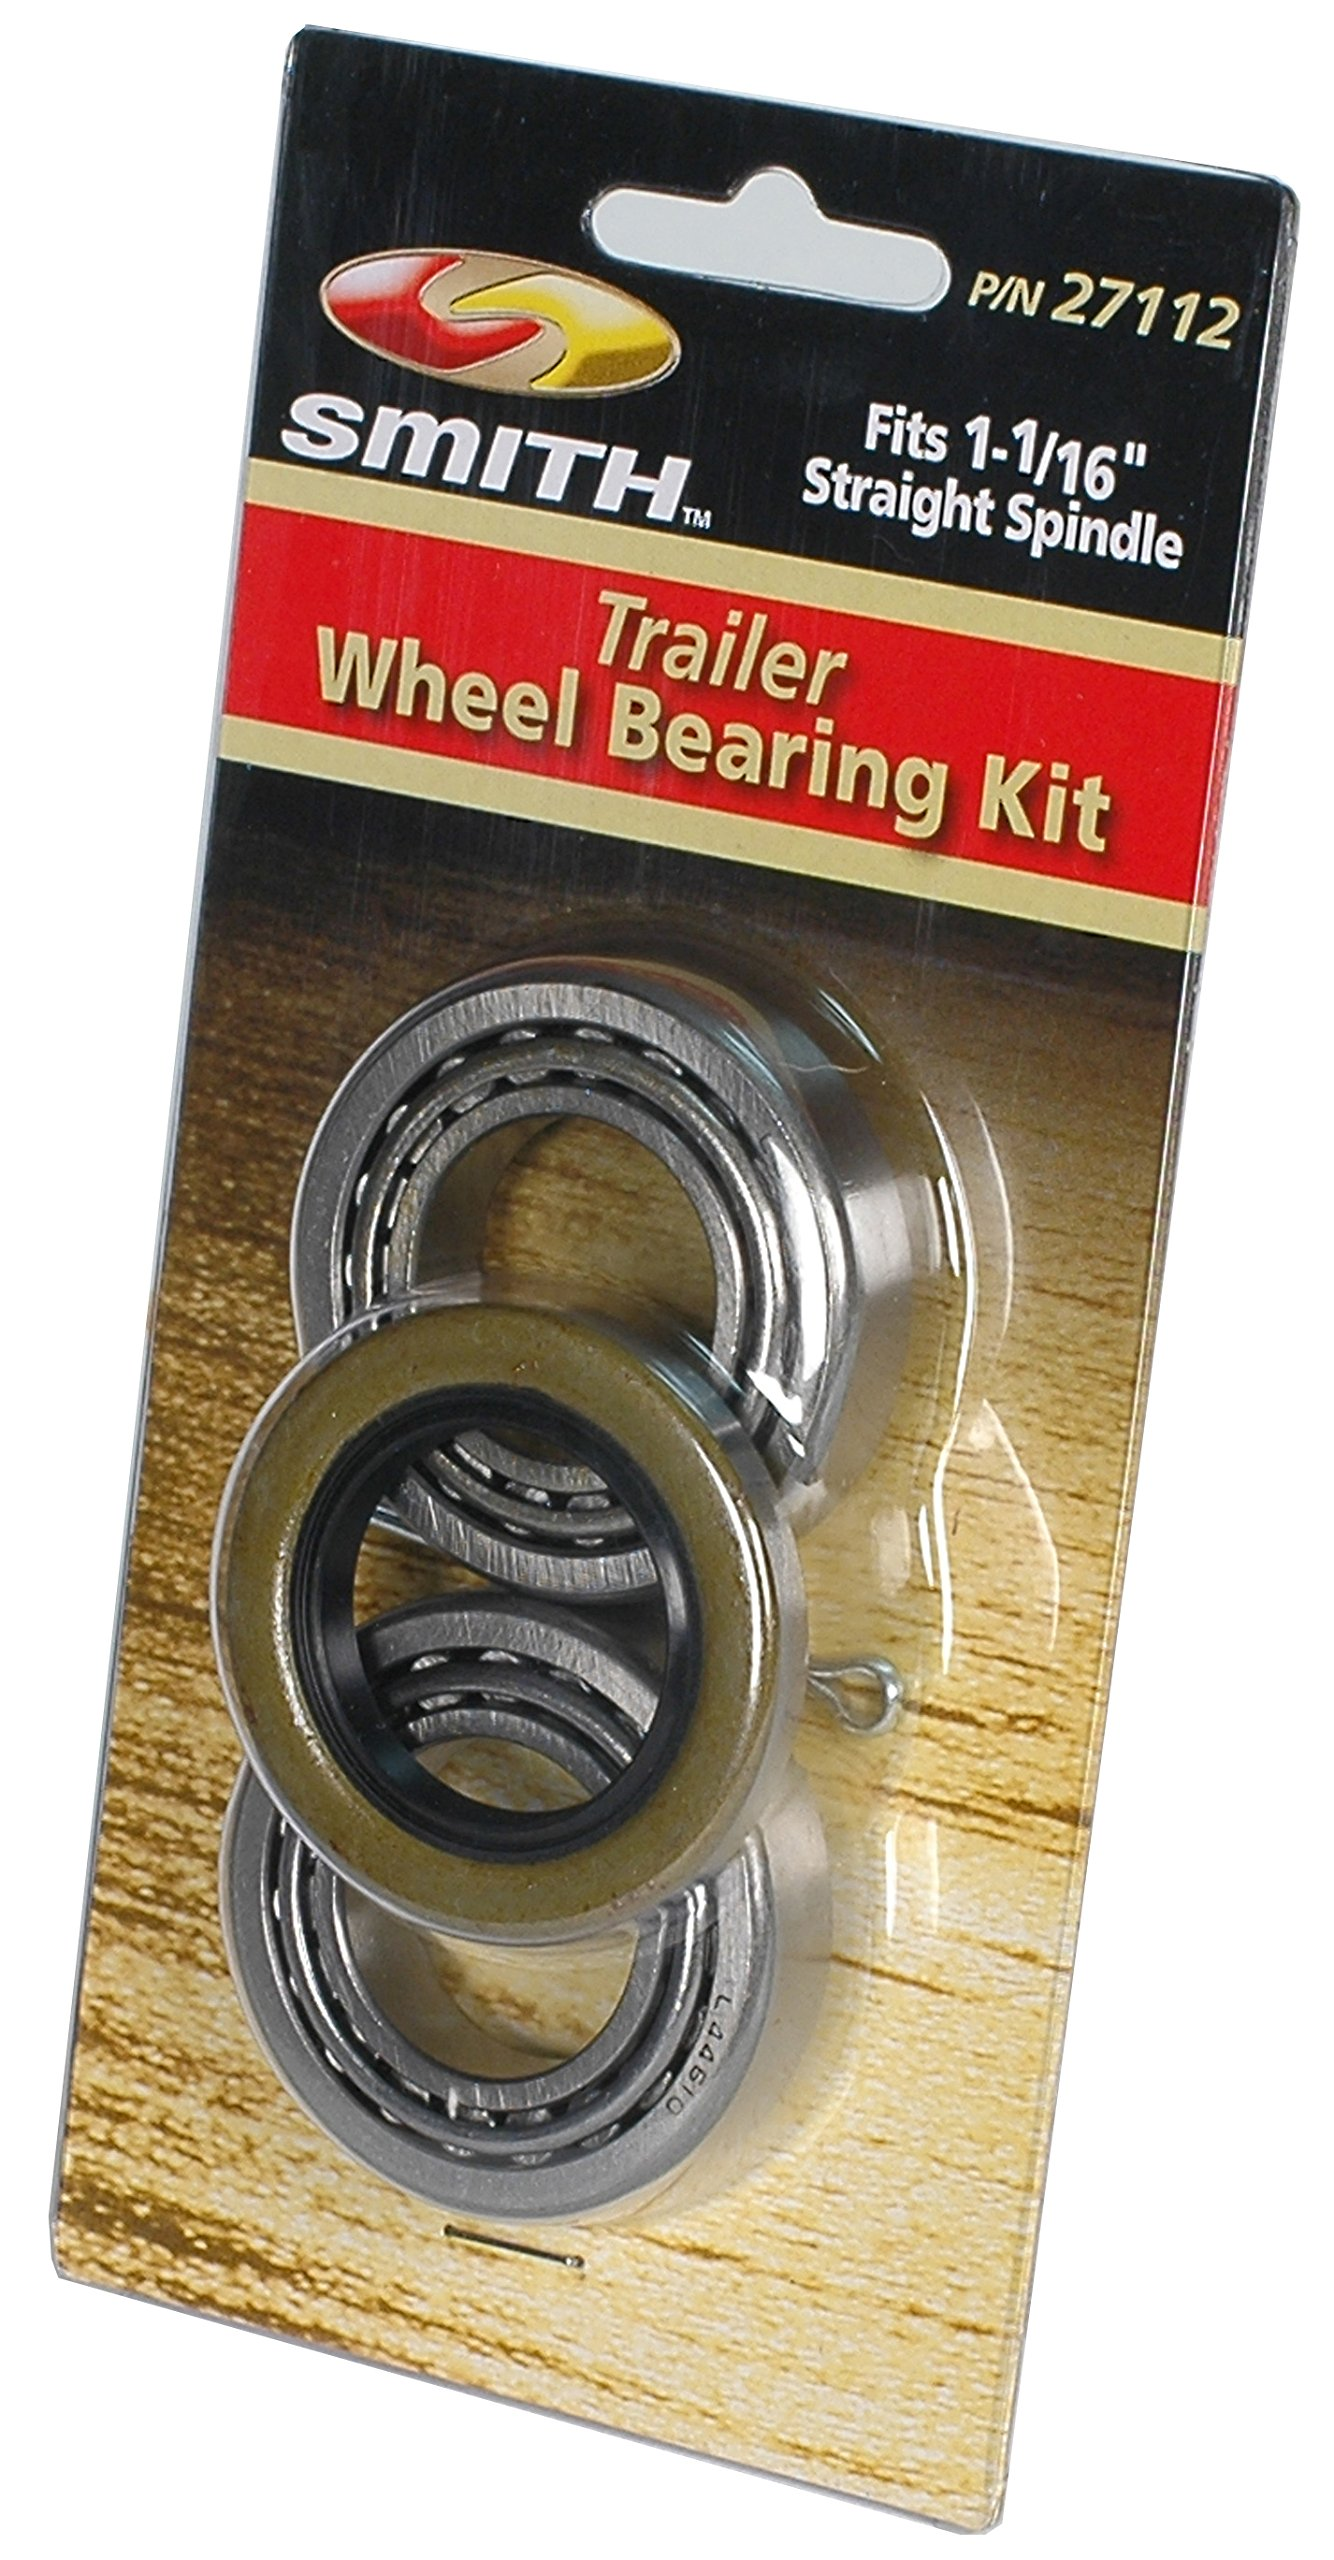 CE Smith Trailer 27112 Bearing Kit (Straight), 1 1/16''- Replacement Parts and Accessories for your Ski Boat, Fishing Boat or Sailboat Trailer